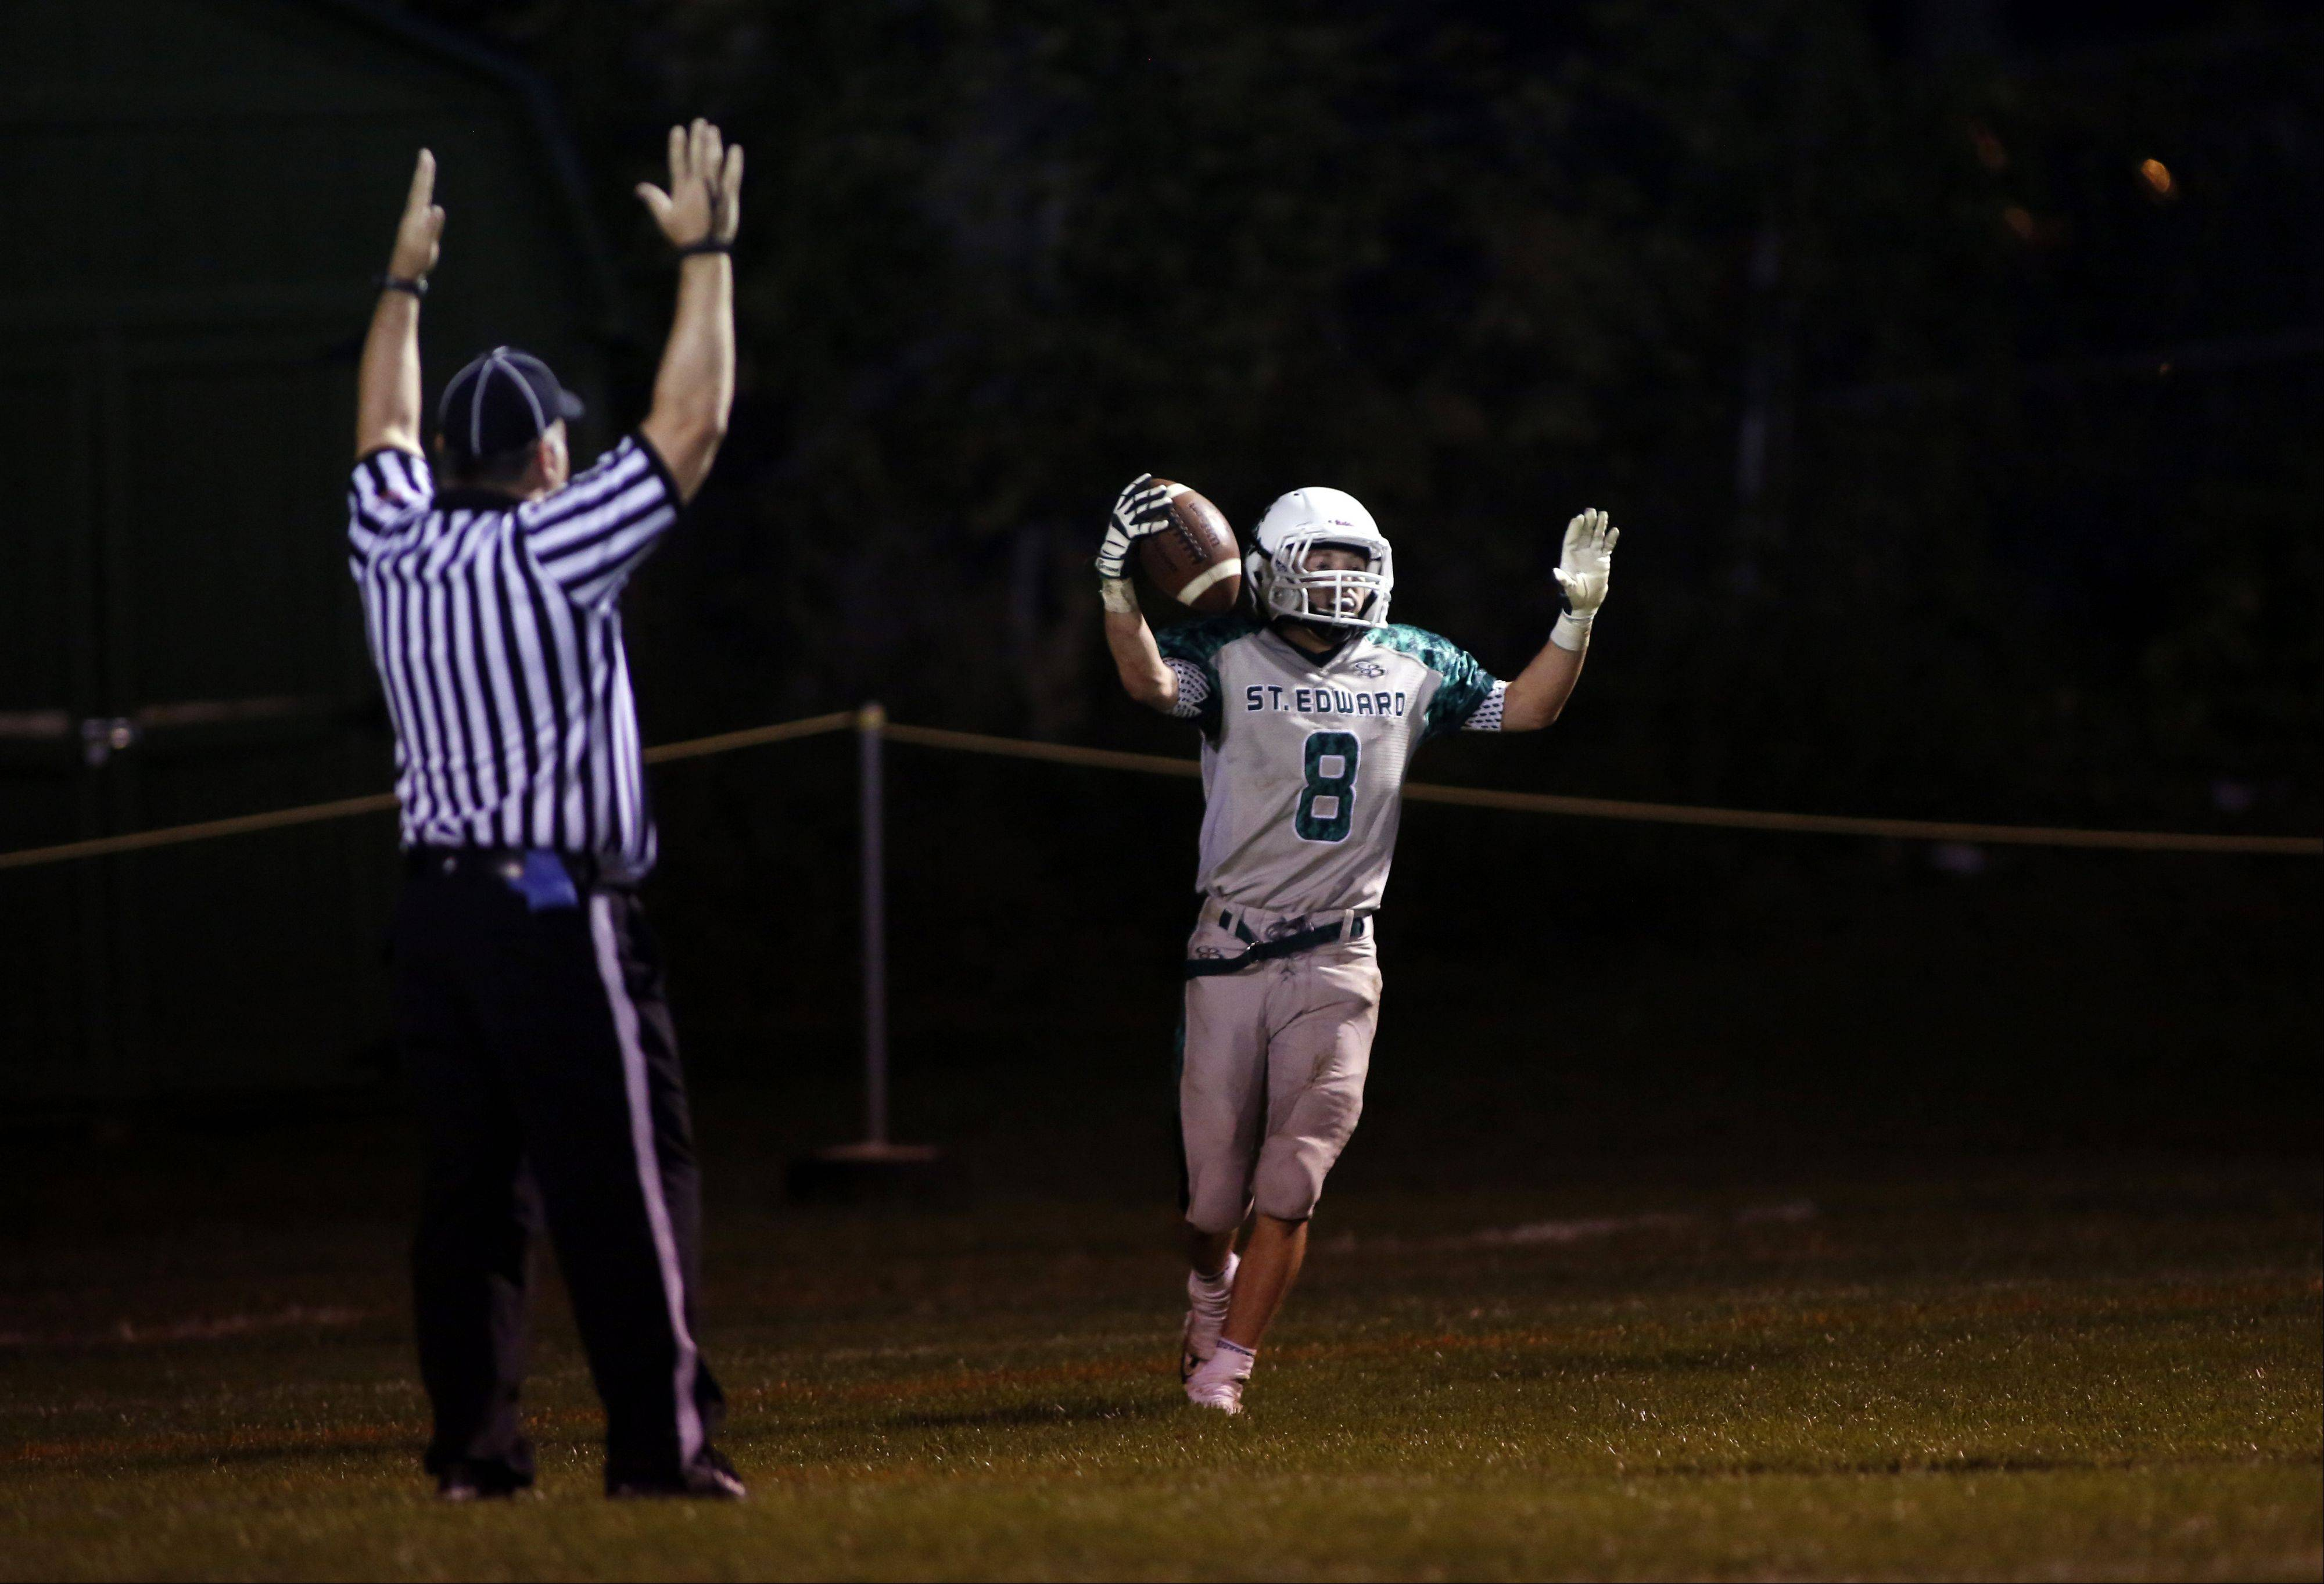 St. Edward�s Michael Castoro celebrates after his second touchdown of the night.